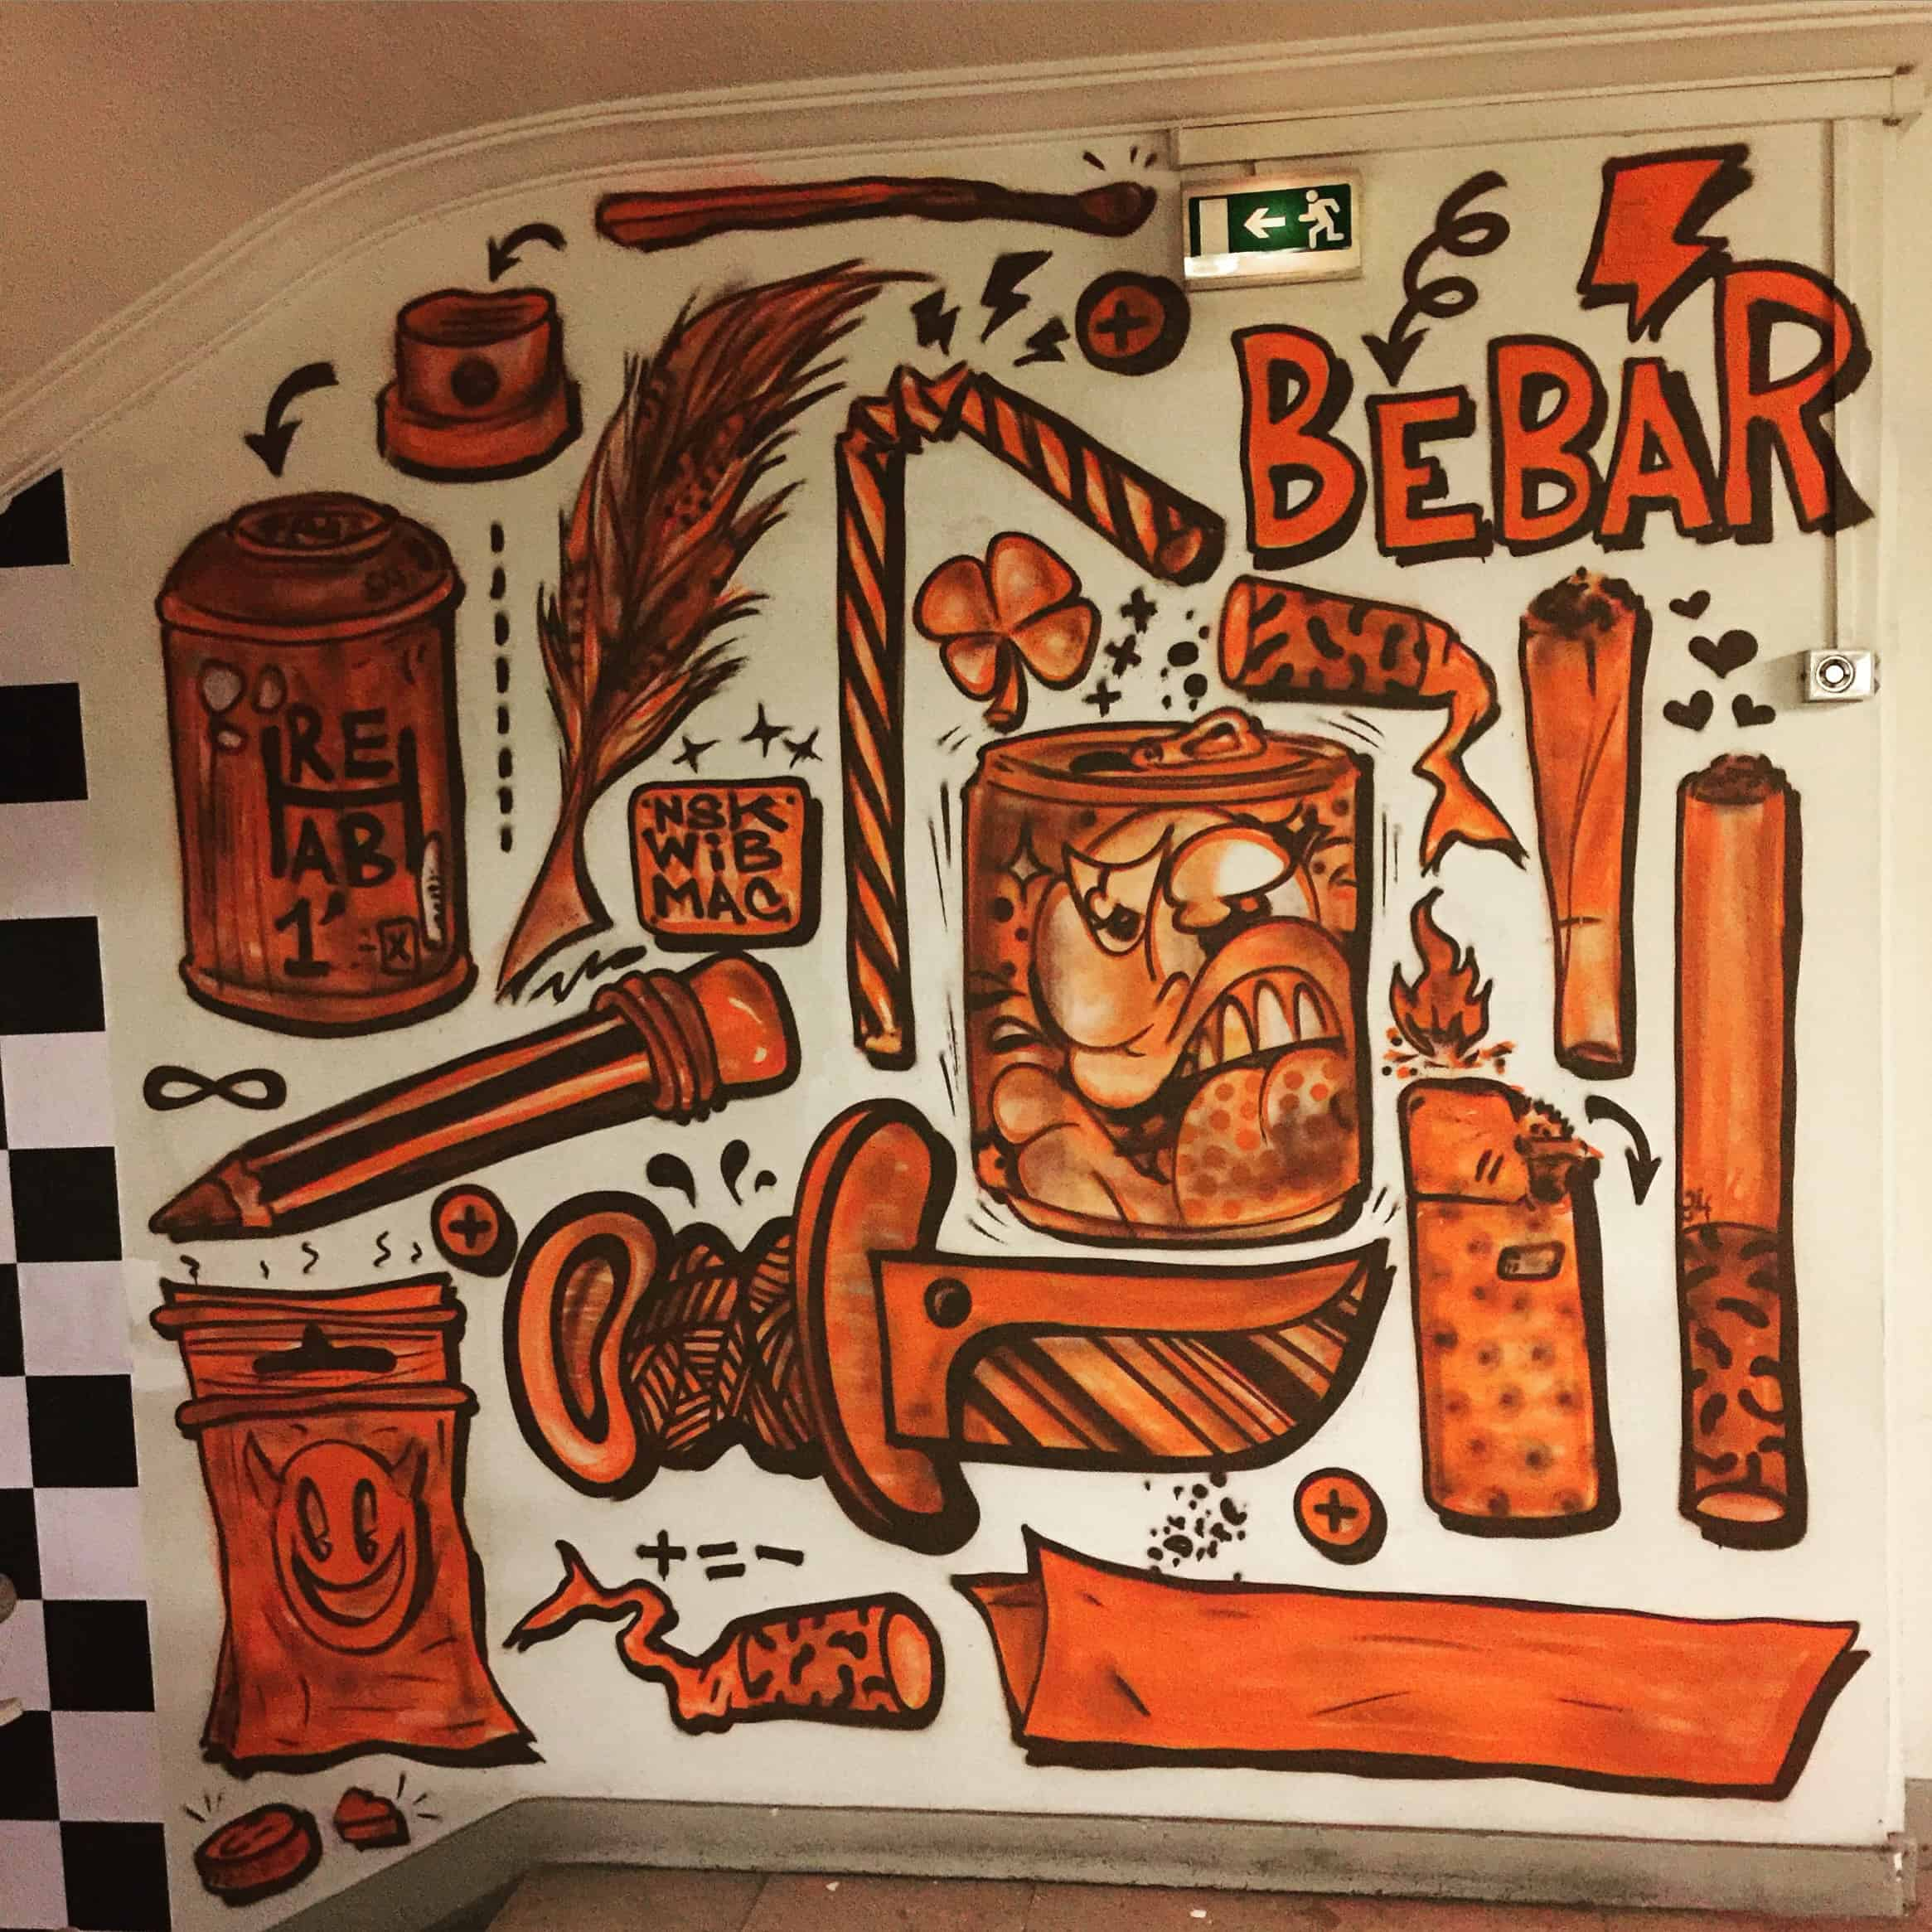 BEBAR GRAFFITI PARIS STREET ART